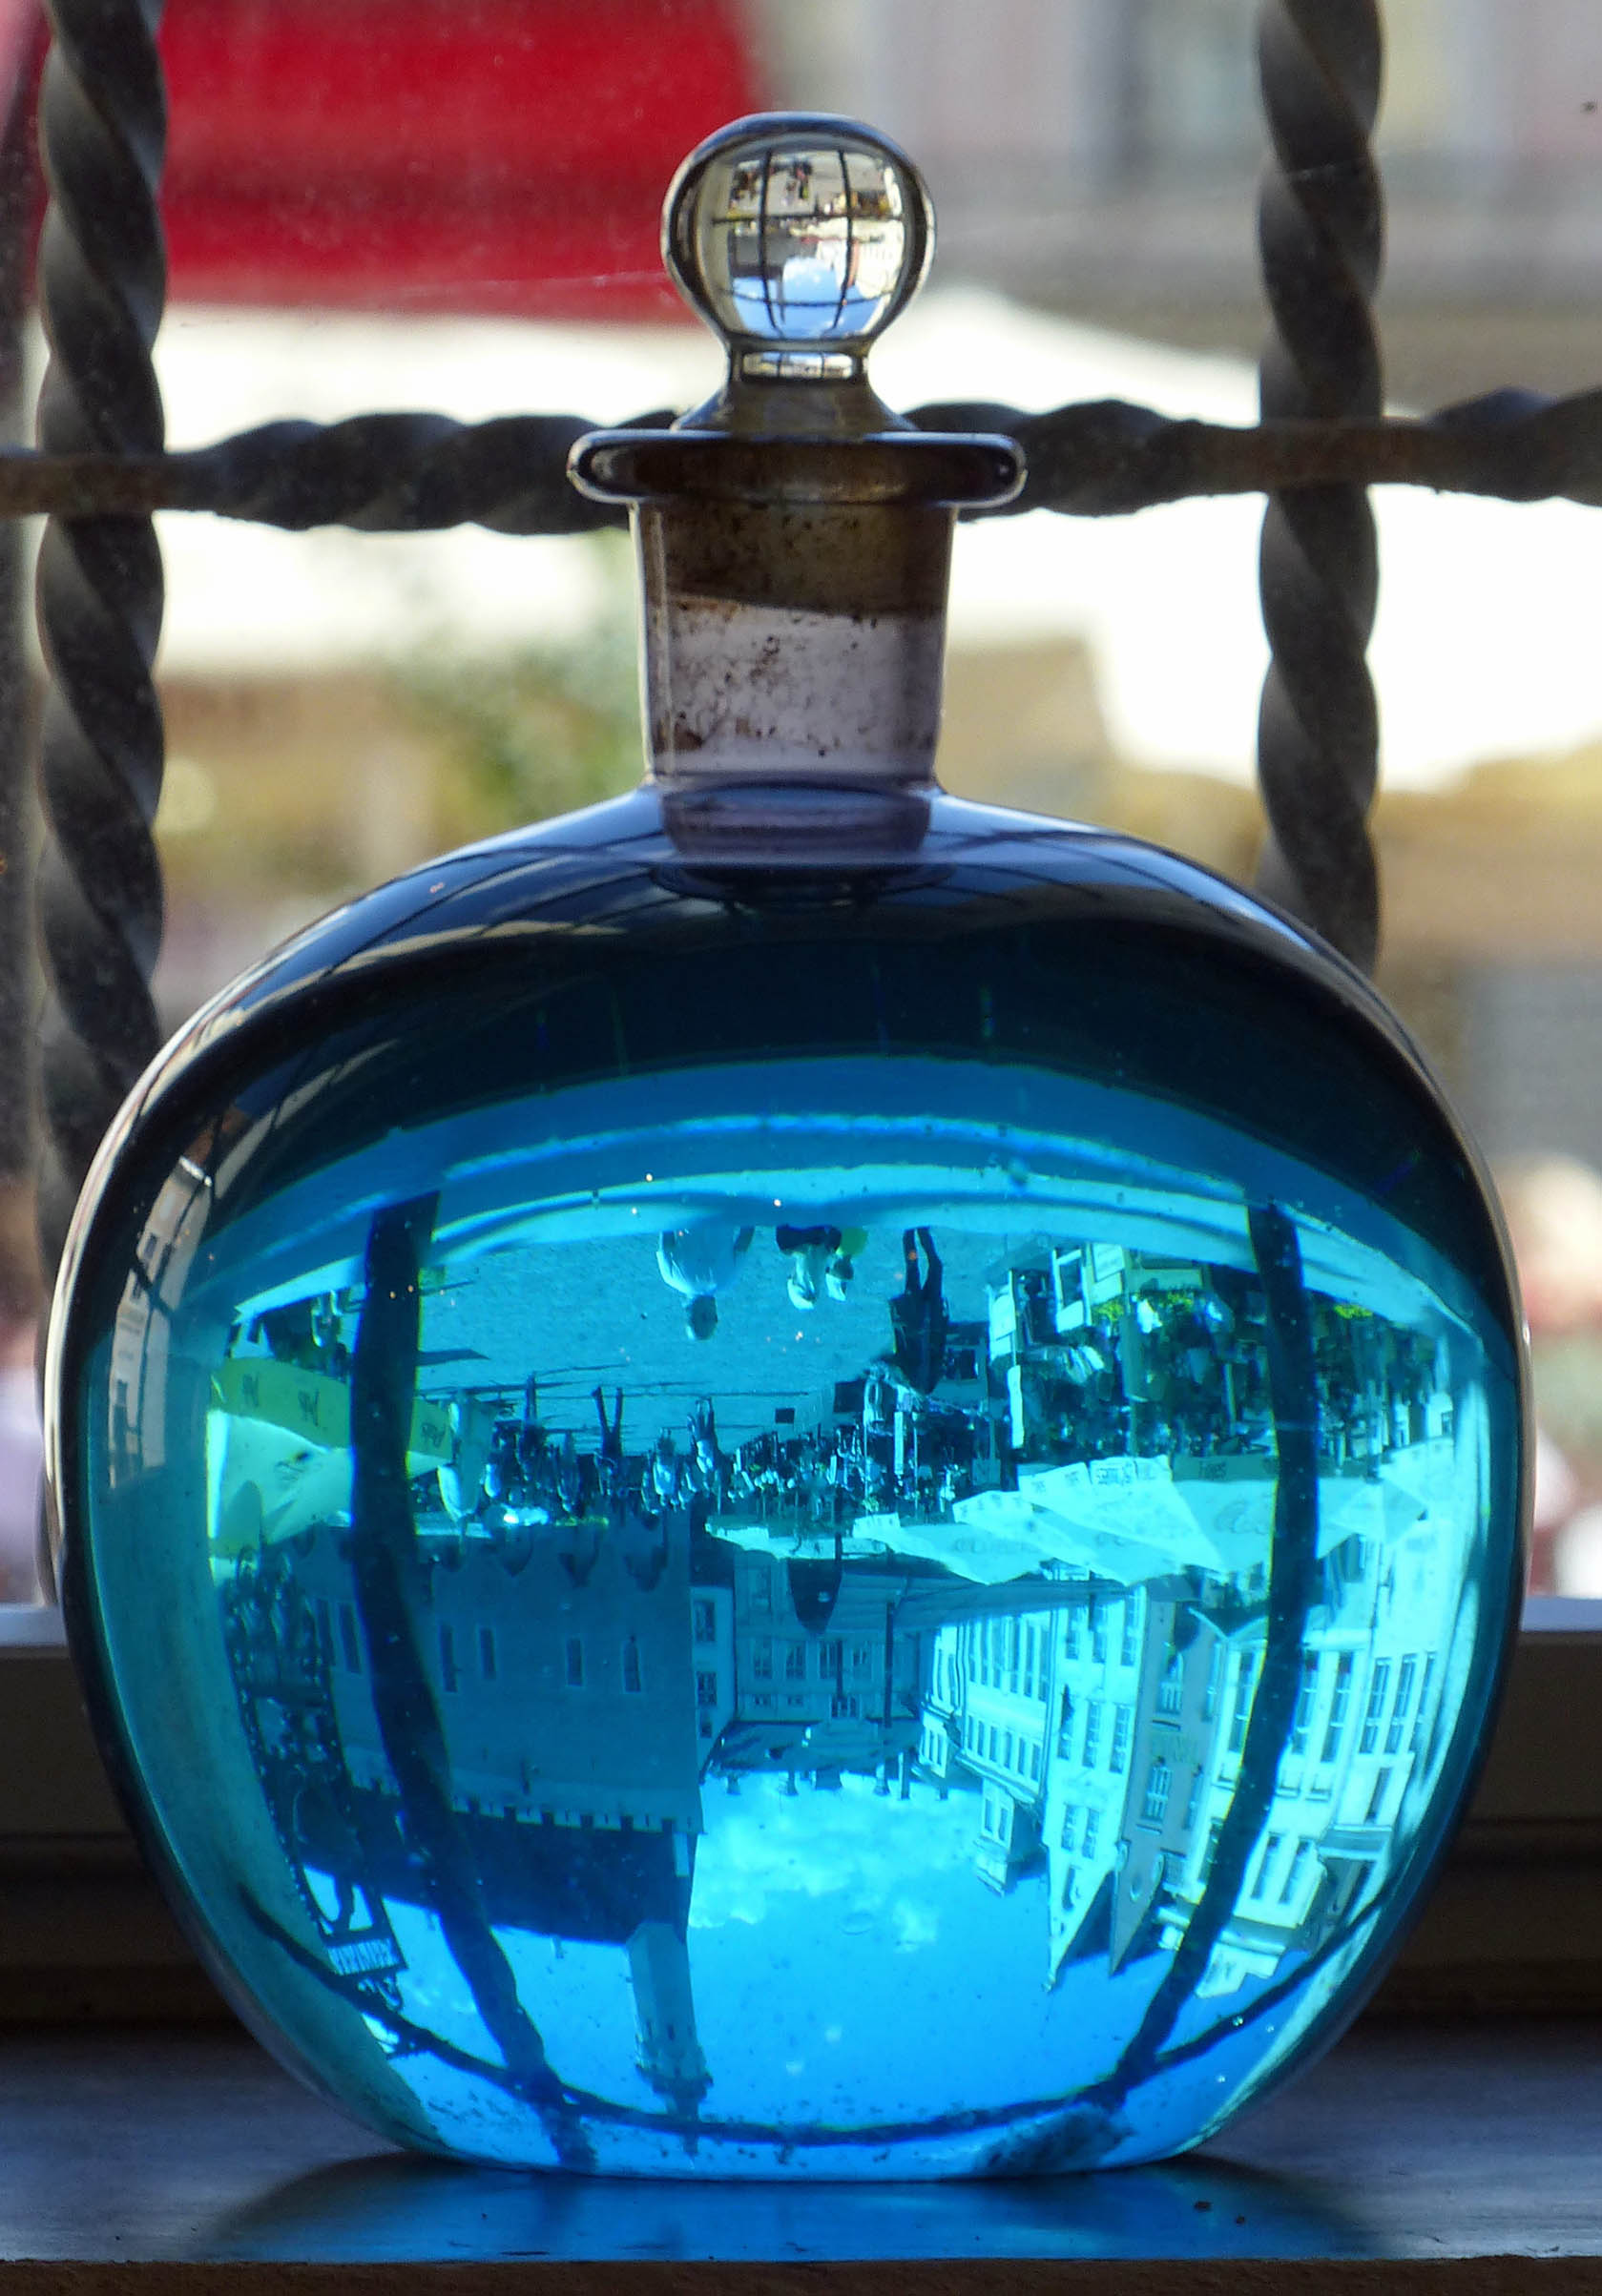 Large bottle of blue liquid in a window with exterior scene refracted upside down